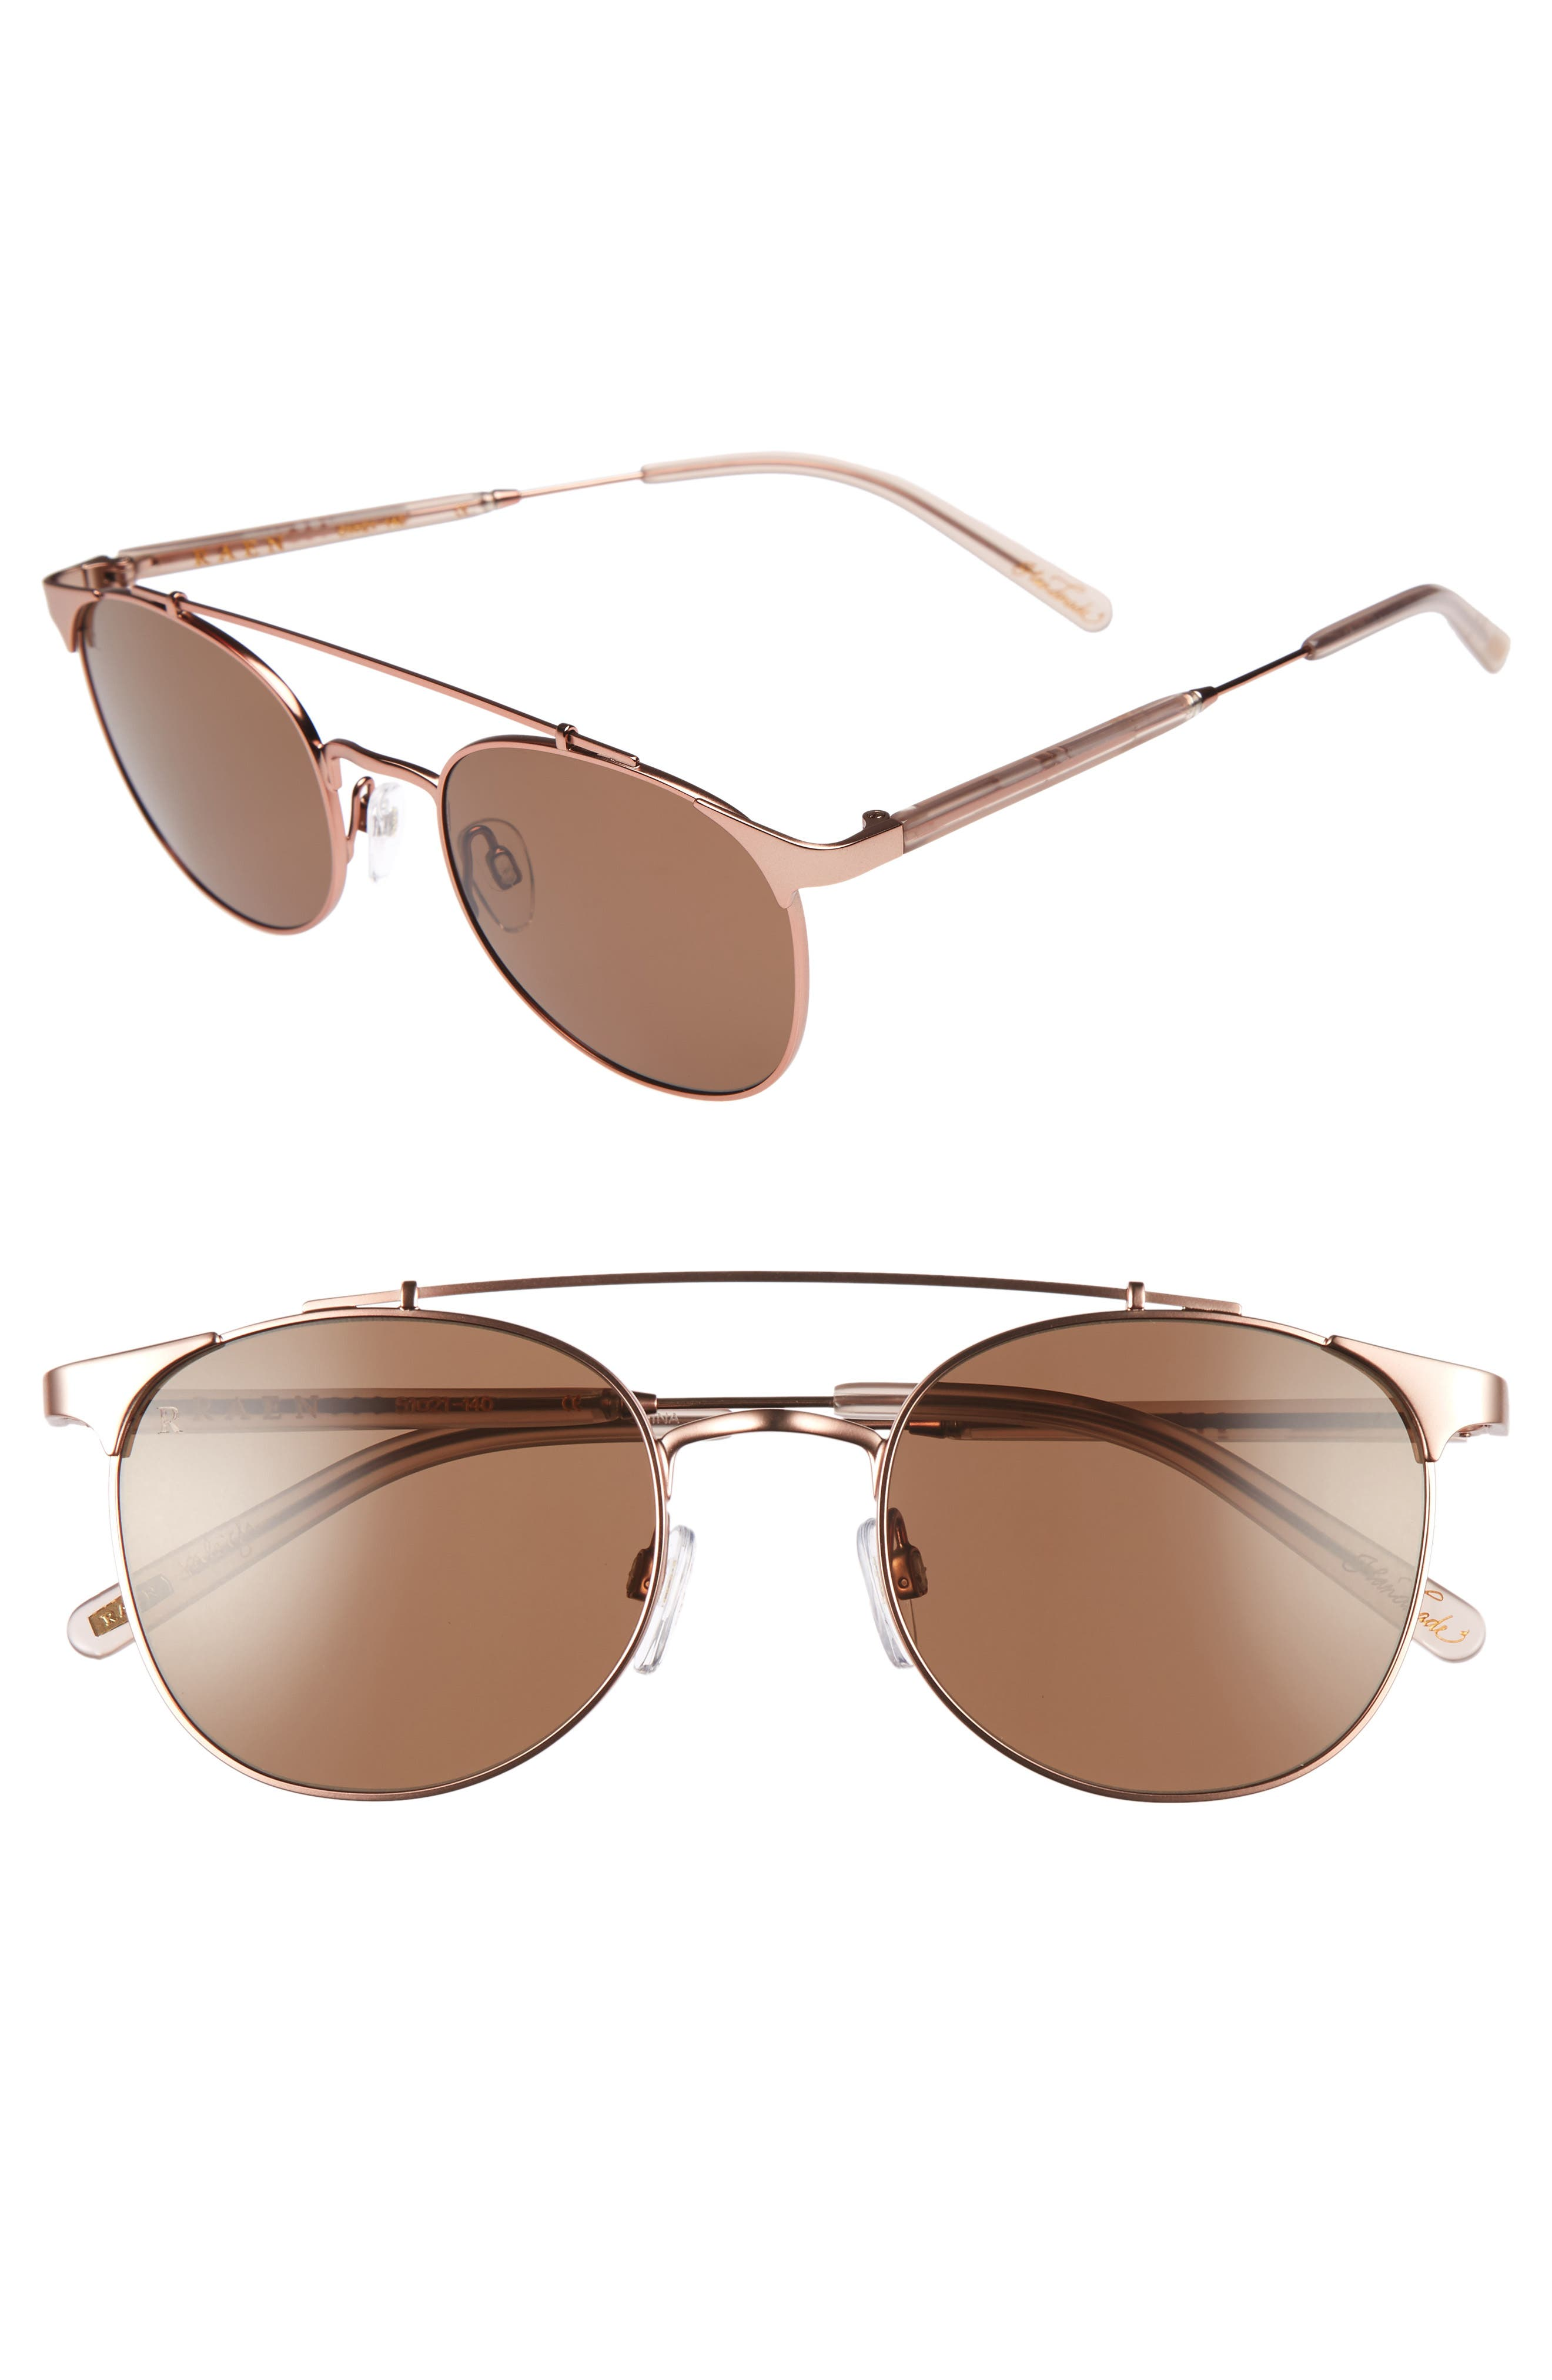 Raleigh 51mm Sunglasses,                             Main thumbnail 1, color,                             Rose Gold/ Flesh